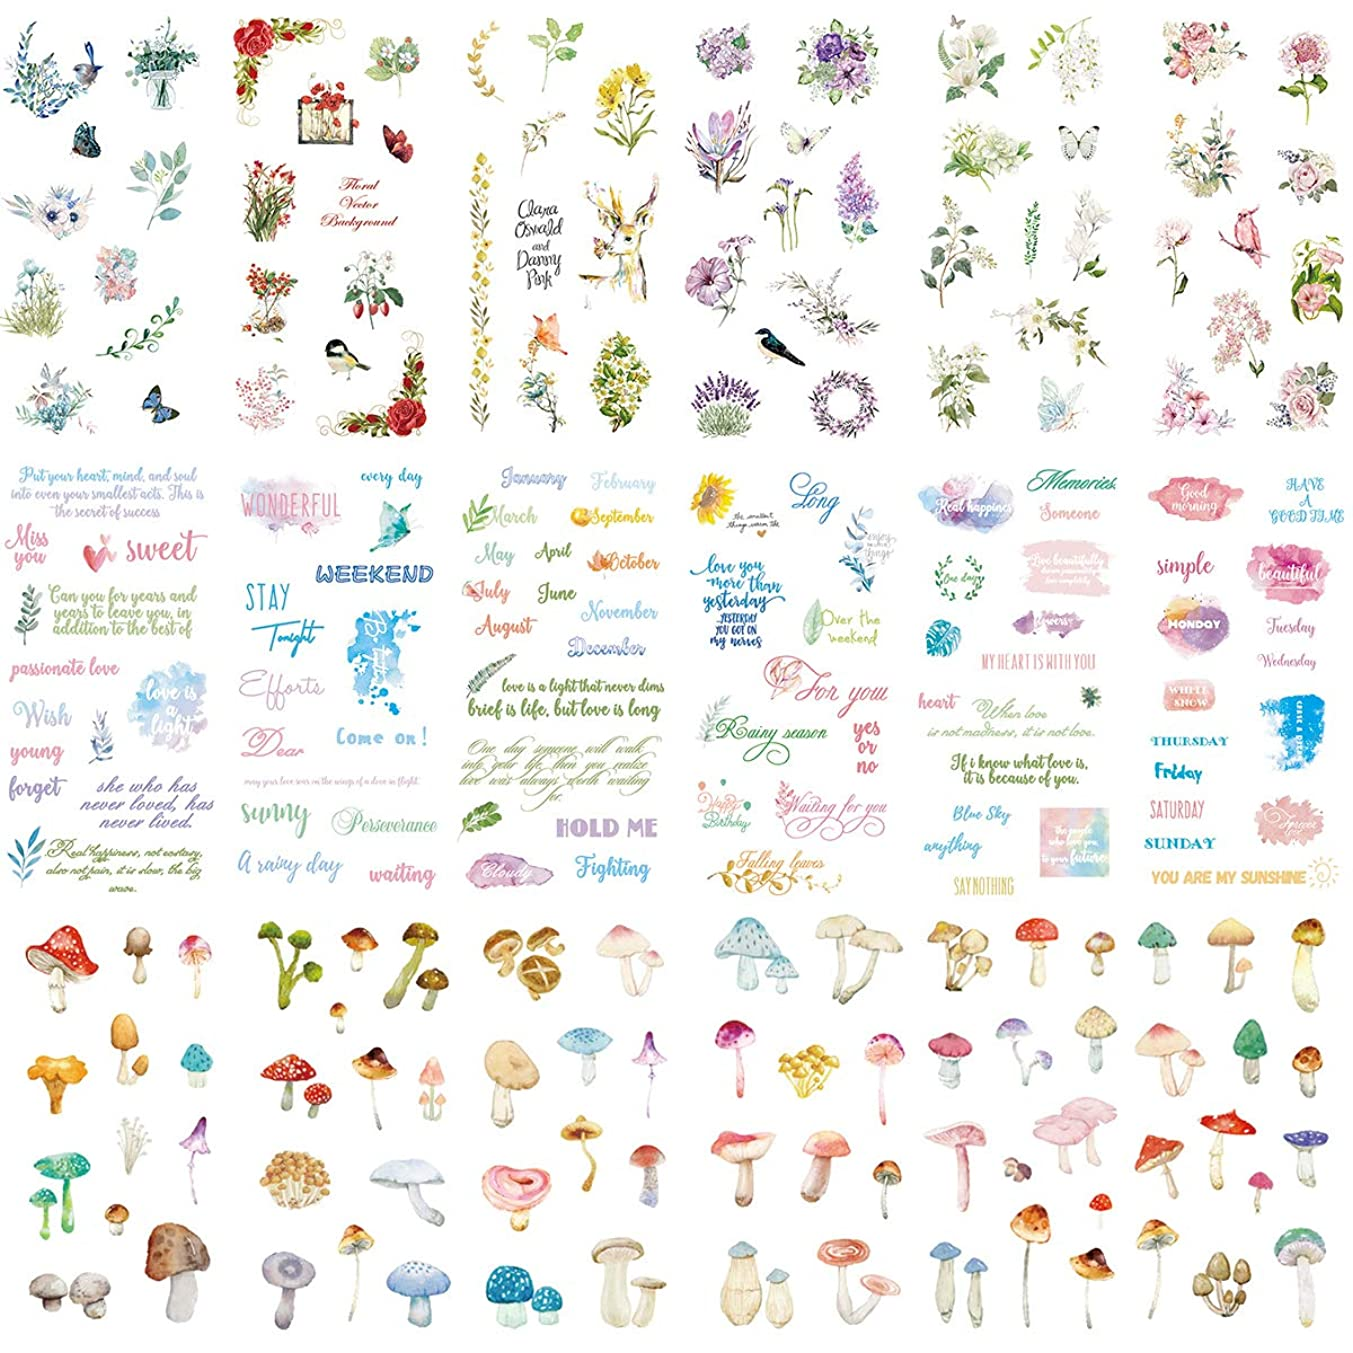 Cute Washi Paper Stationery Sticker Set (Assorted 18 Sheets) Floral Flower English Letter Greetings Colorful Mushroom Kawaii Stickers Decoration Label for Journal Planner Scrapbooking Album Diary Book